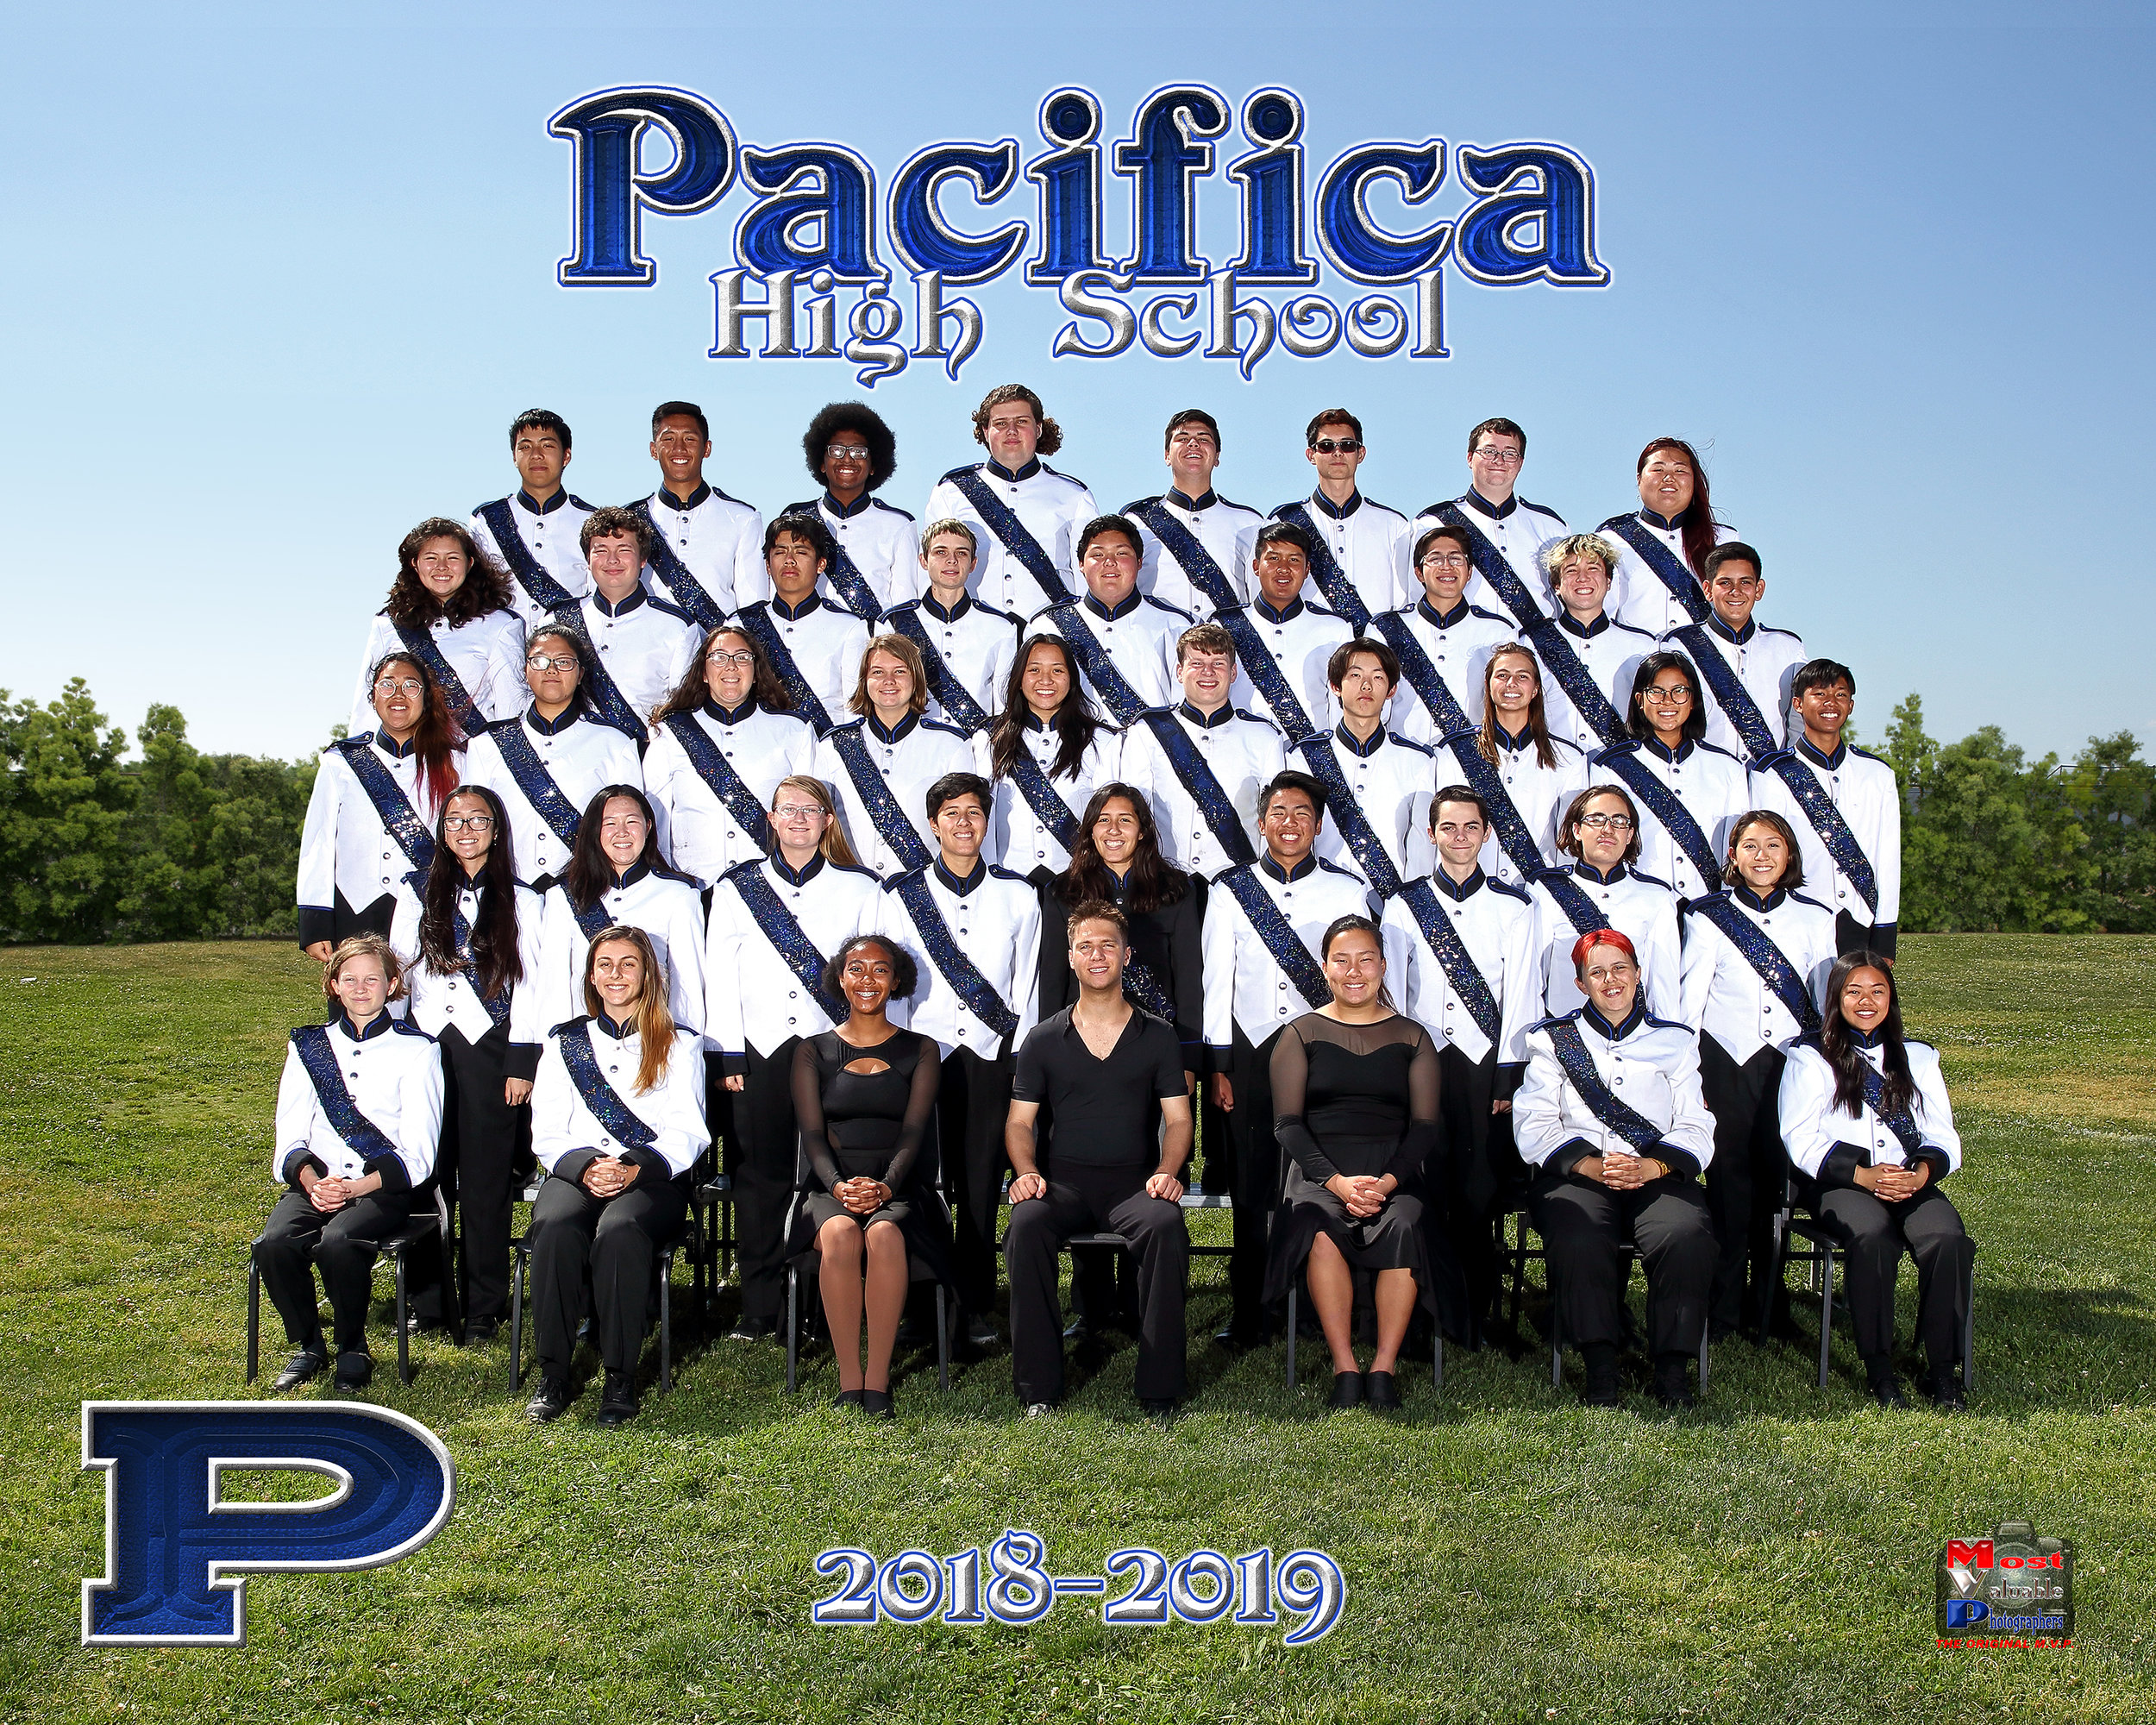 Pacifca High School Marching Band 2017/2018